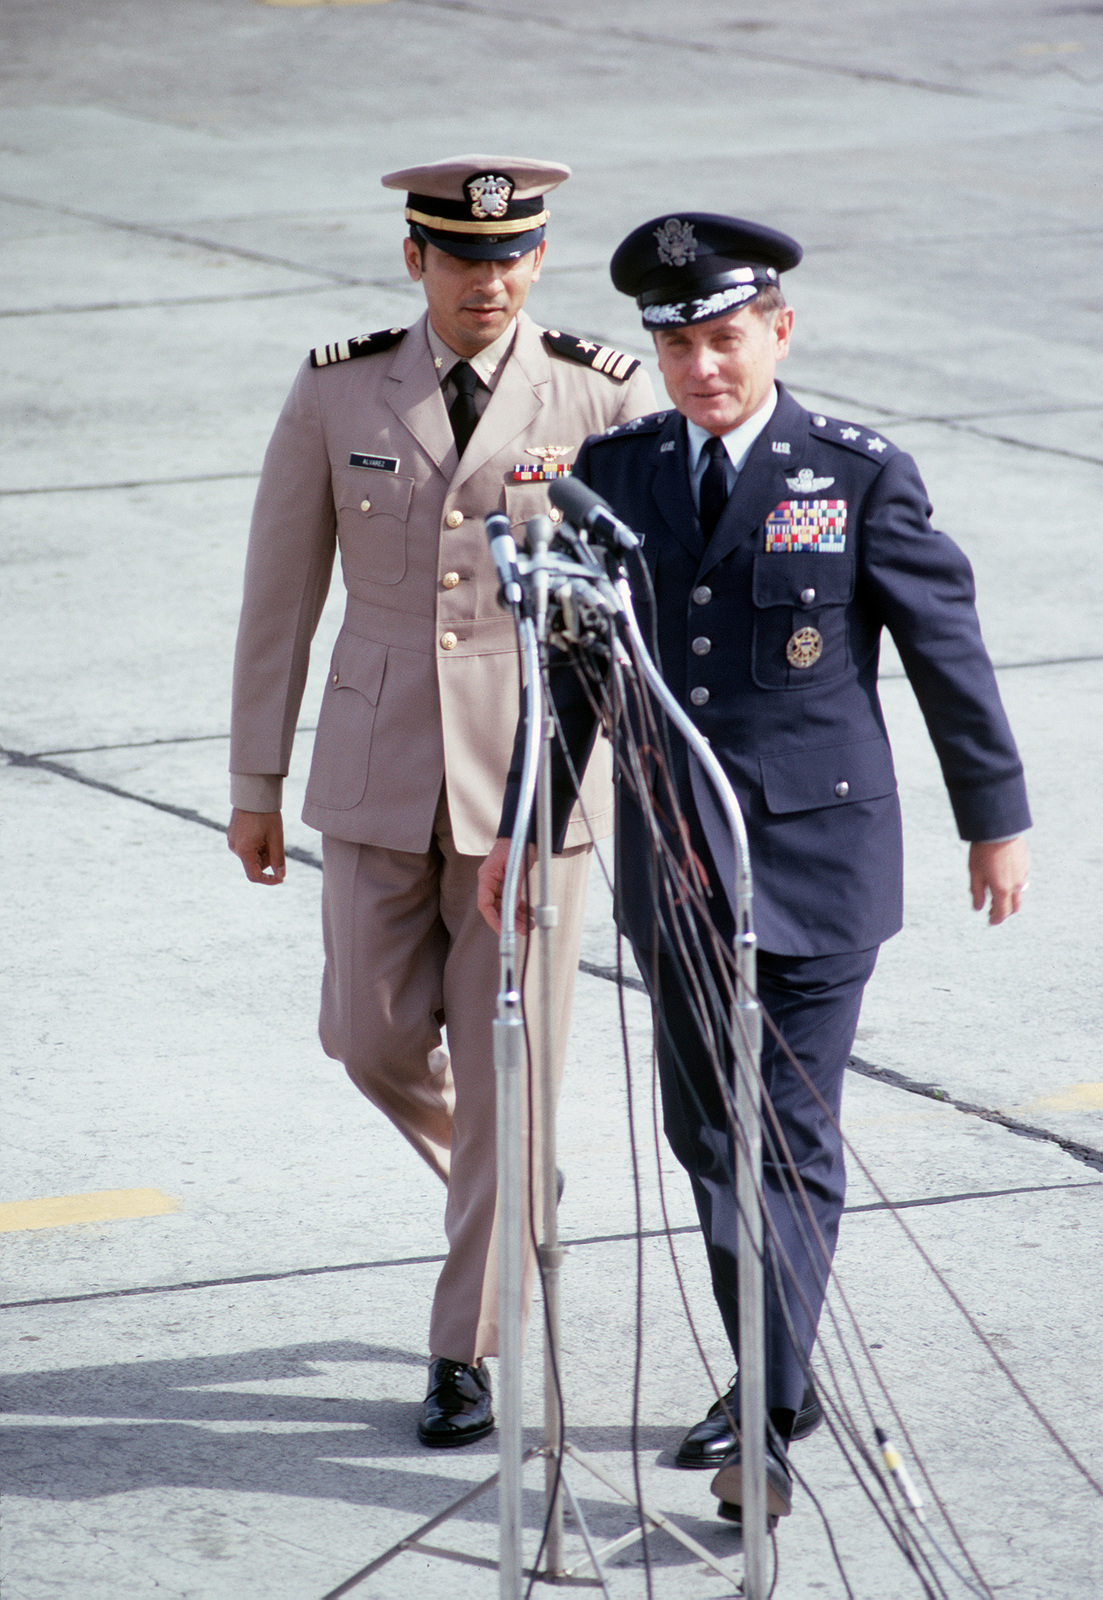 Former POW and U.S.Navy LMDR Everett Alvarez (Captured 5 Aug 64) is lead to the microphones by MGEN John Gonge, 22nd Air Force Commander after his arrival from Clark Air Base. LCMDR Alvarez was released by the North Vietnamese in Hanoi on 12 Feb 73